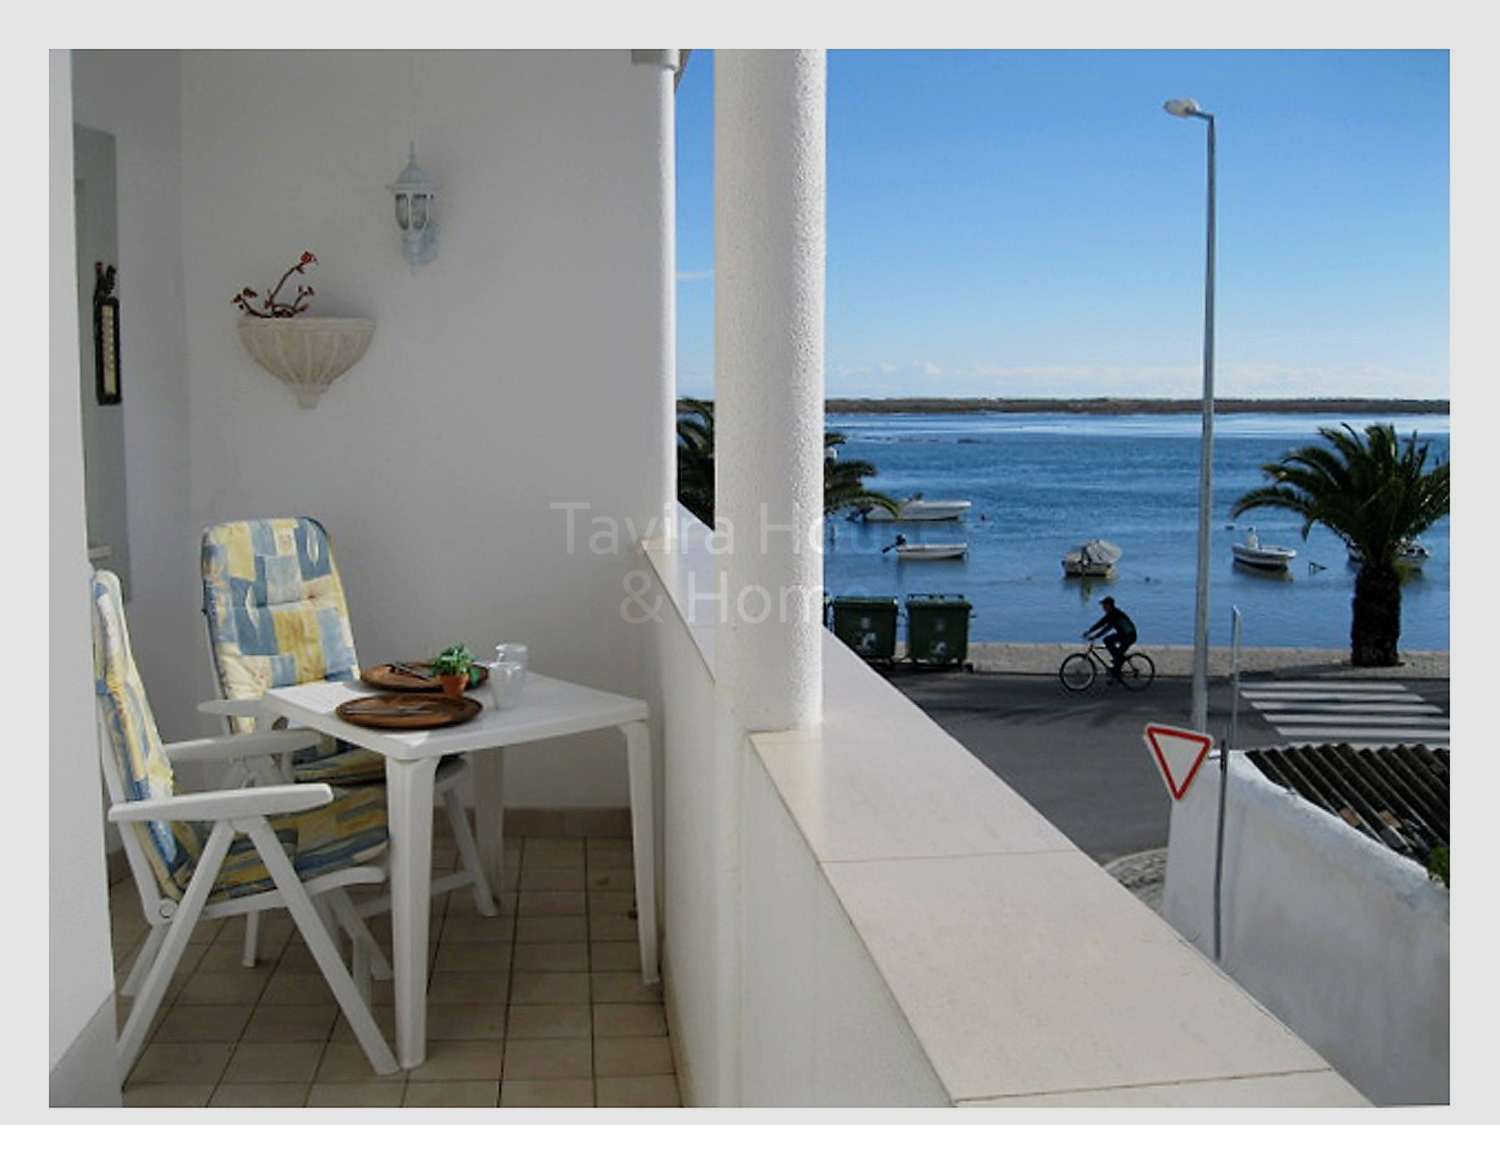 A0536 - 1 Bedroom Apartment on Front Line  Tavira  Santa Luzia  Portugal